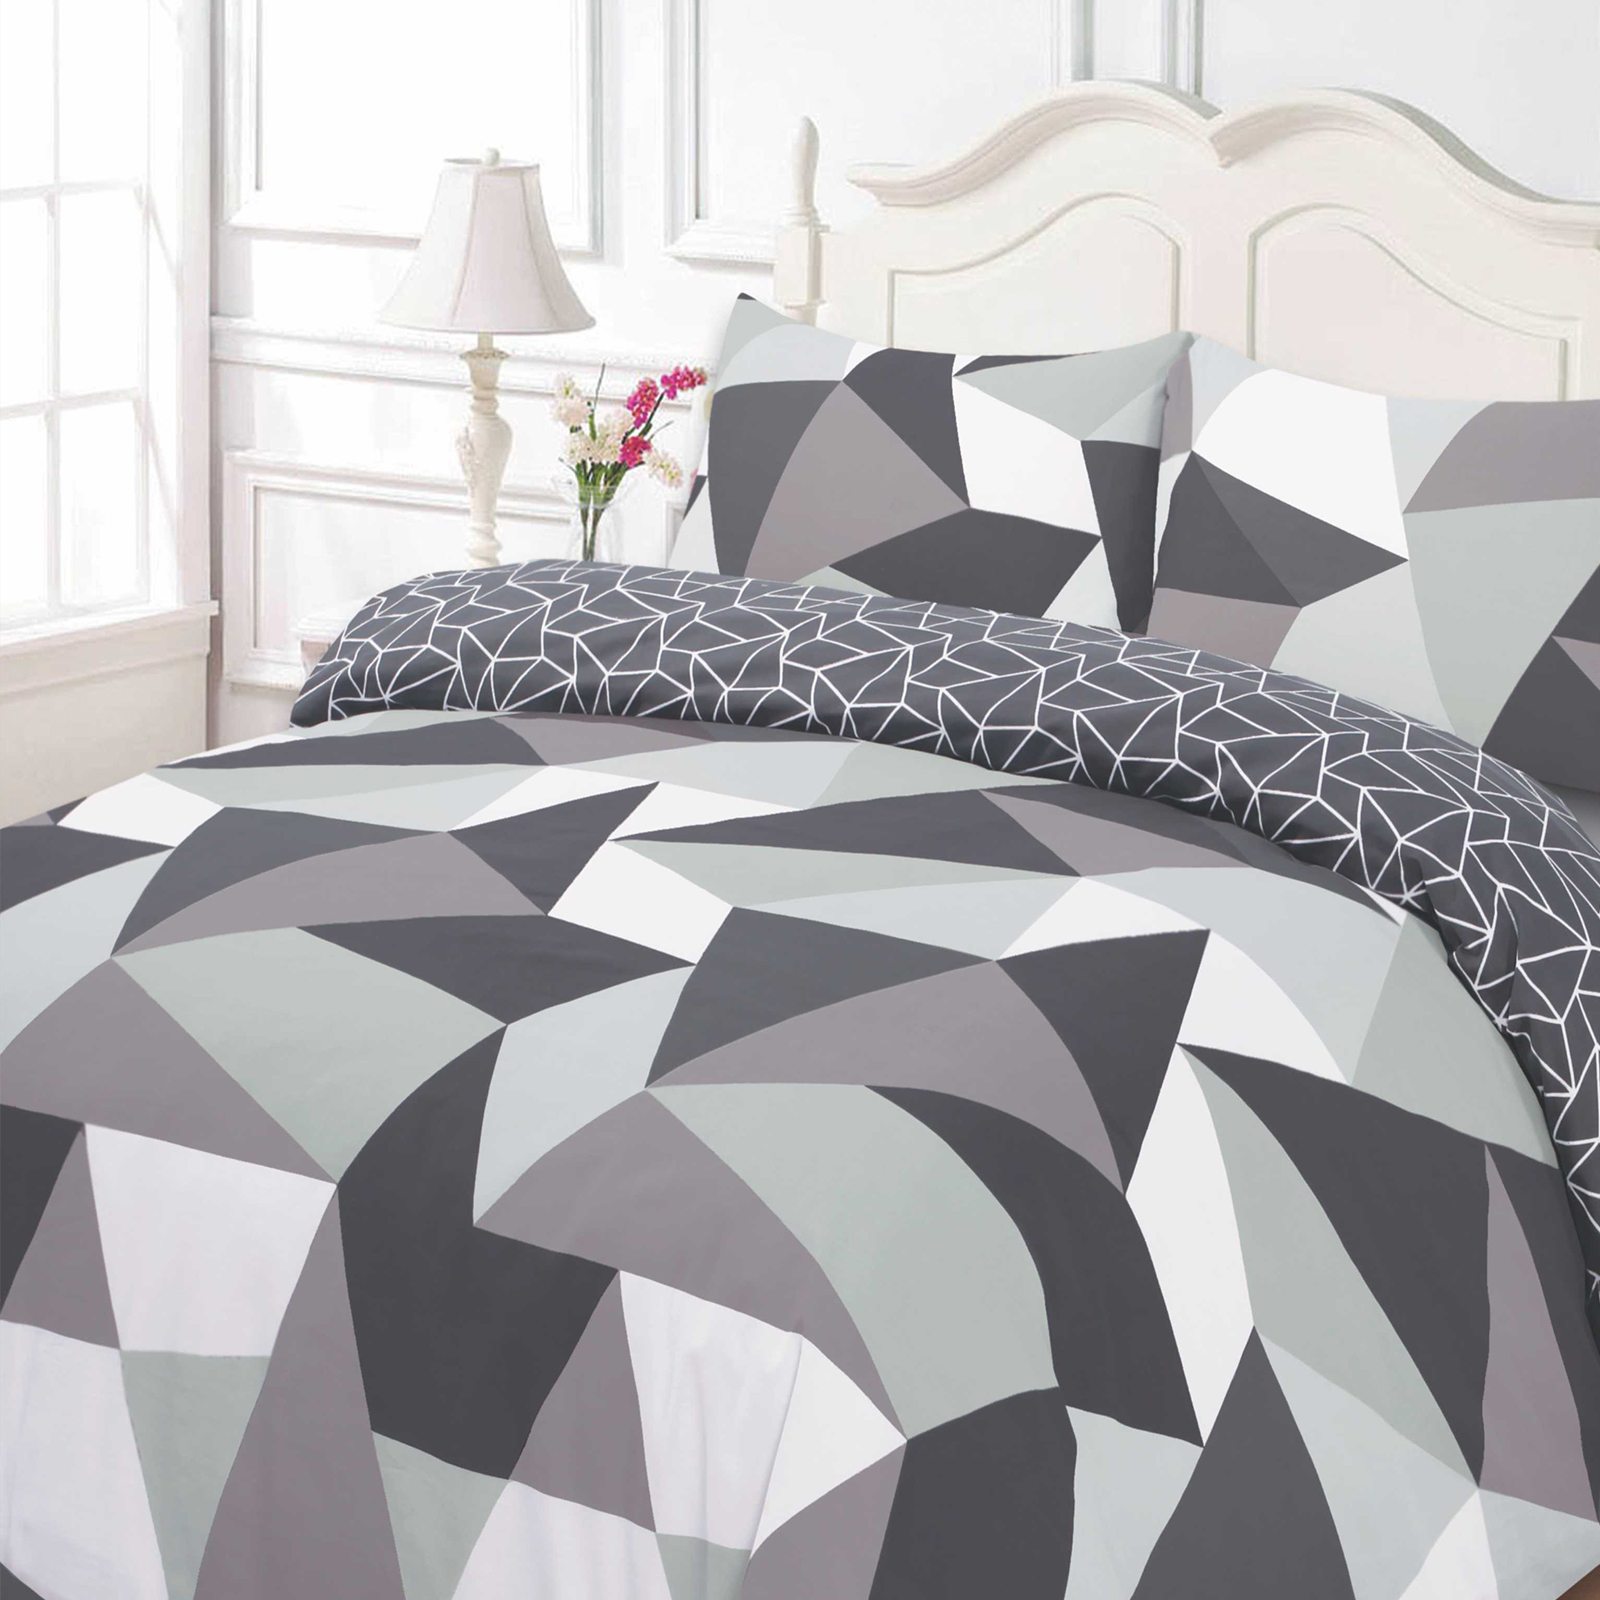 dreamscene geometrisch formen bett bezug mit kissenbezug. Black Bedroom Furniture Sets. Home Design Ideas